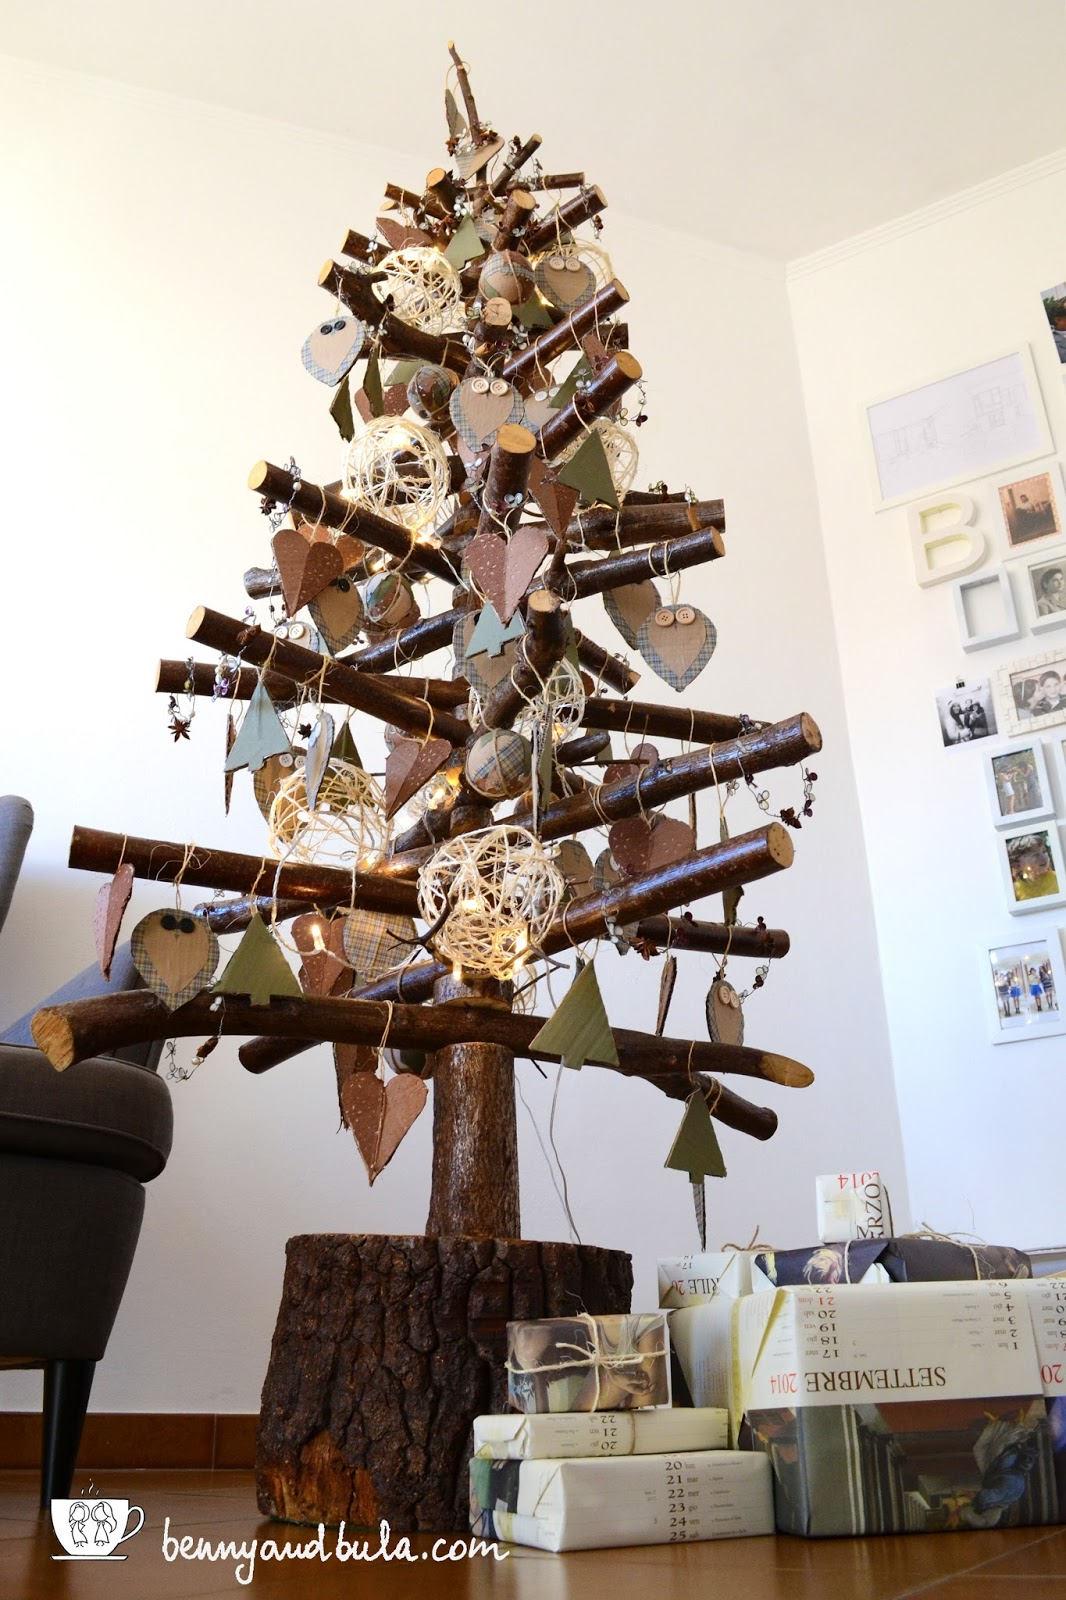 Albero di Natale in legno Faidate/DIY Scandinavian Christmas Tree with Branches